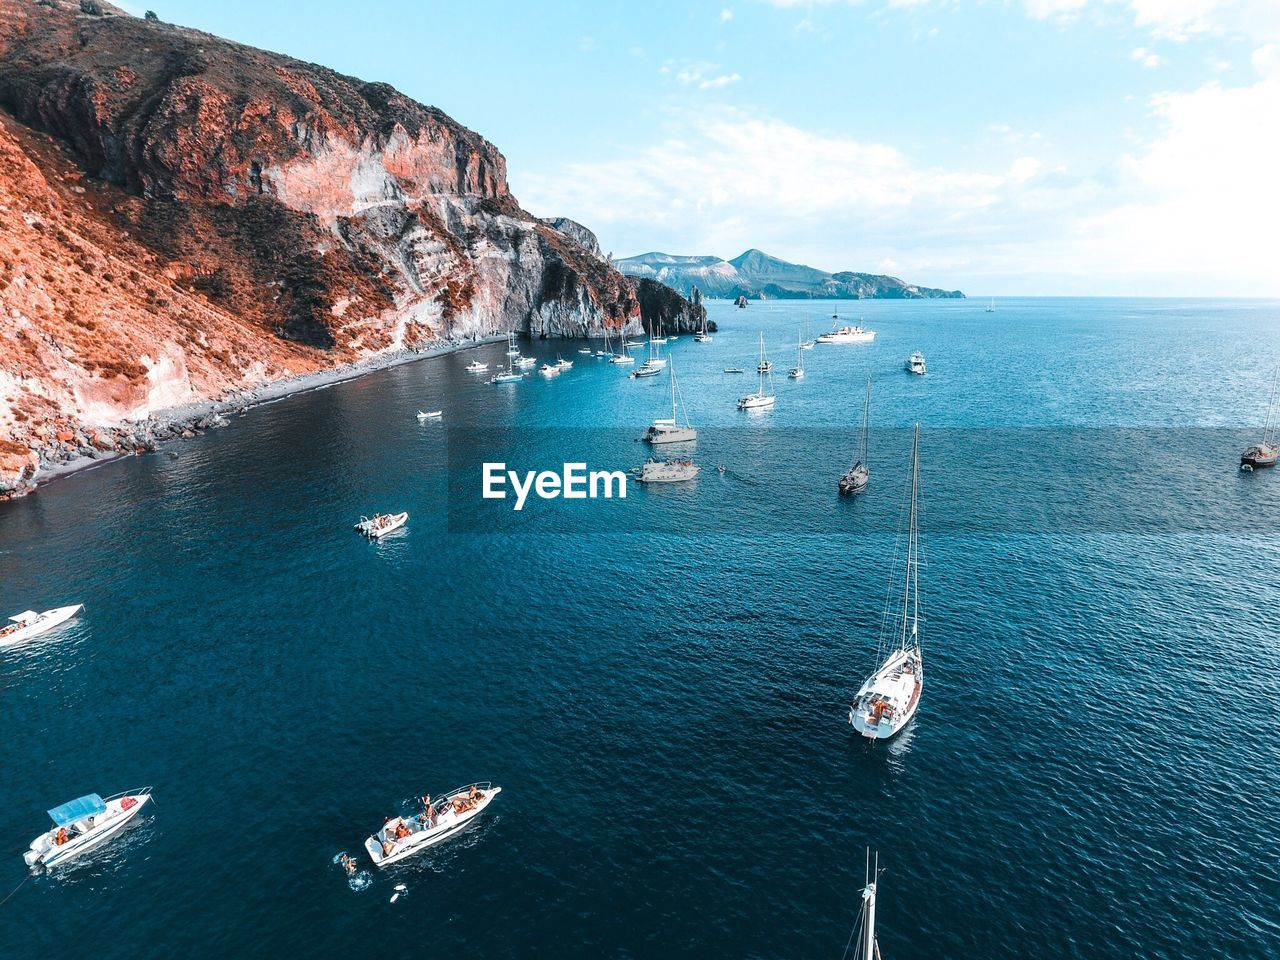 Scenic View Of Boats On Sea